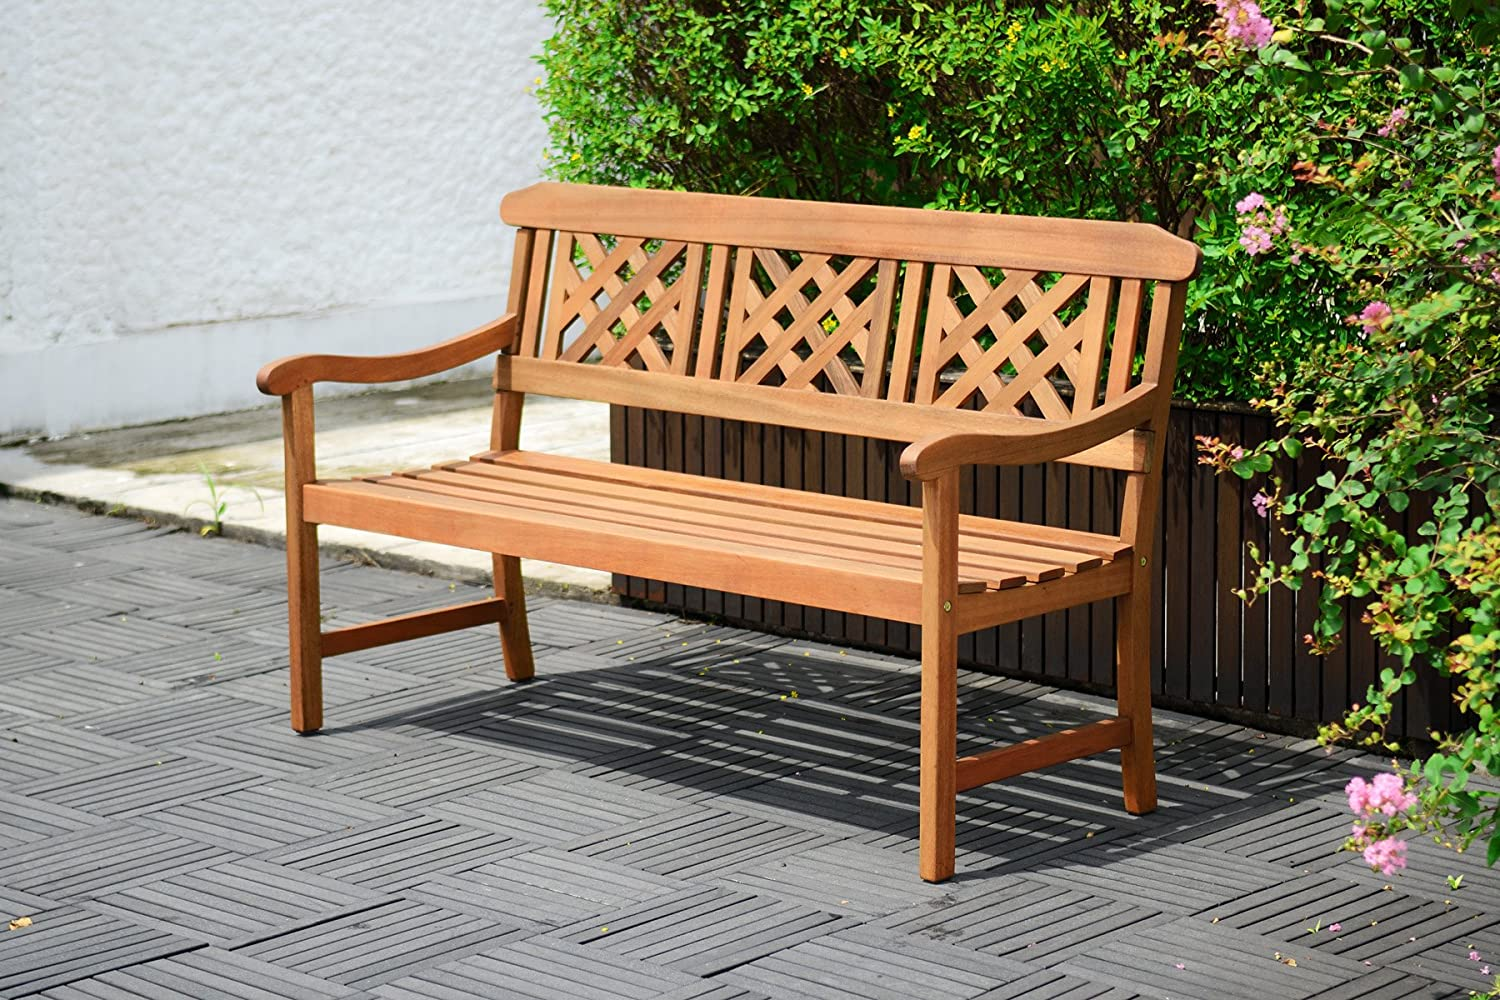 FENCE 2, 5 SEATER BENCH ScanCom SCAN1092